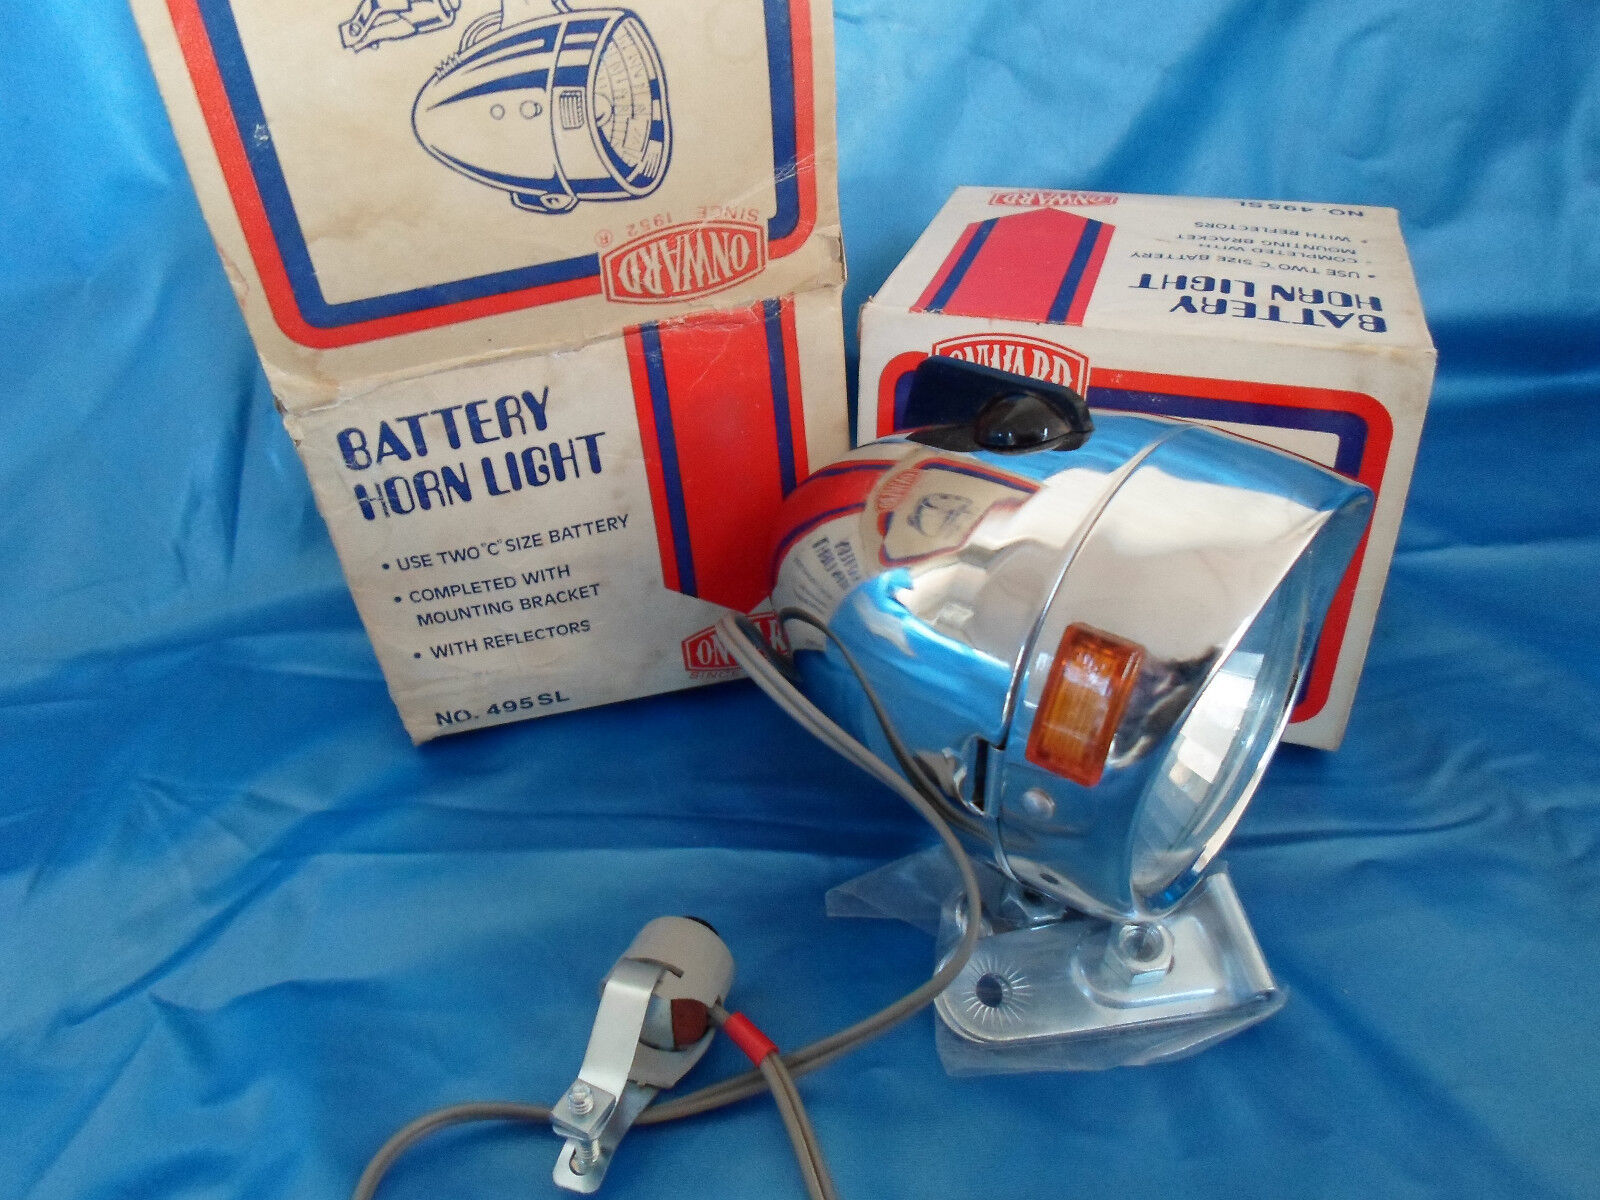 Vintage N.O.S Bicycle Light  -ONWARD- Battery Horn Light For Raleigh schwinn  we offer various famous brand